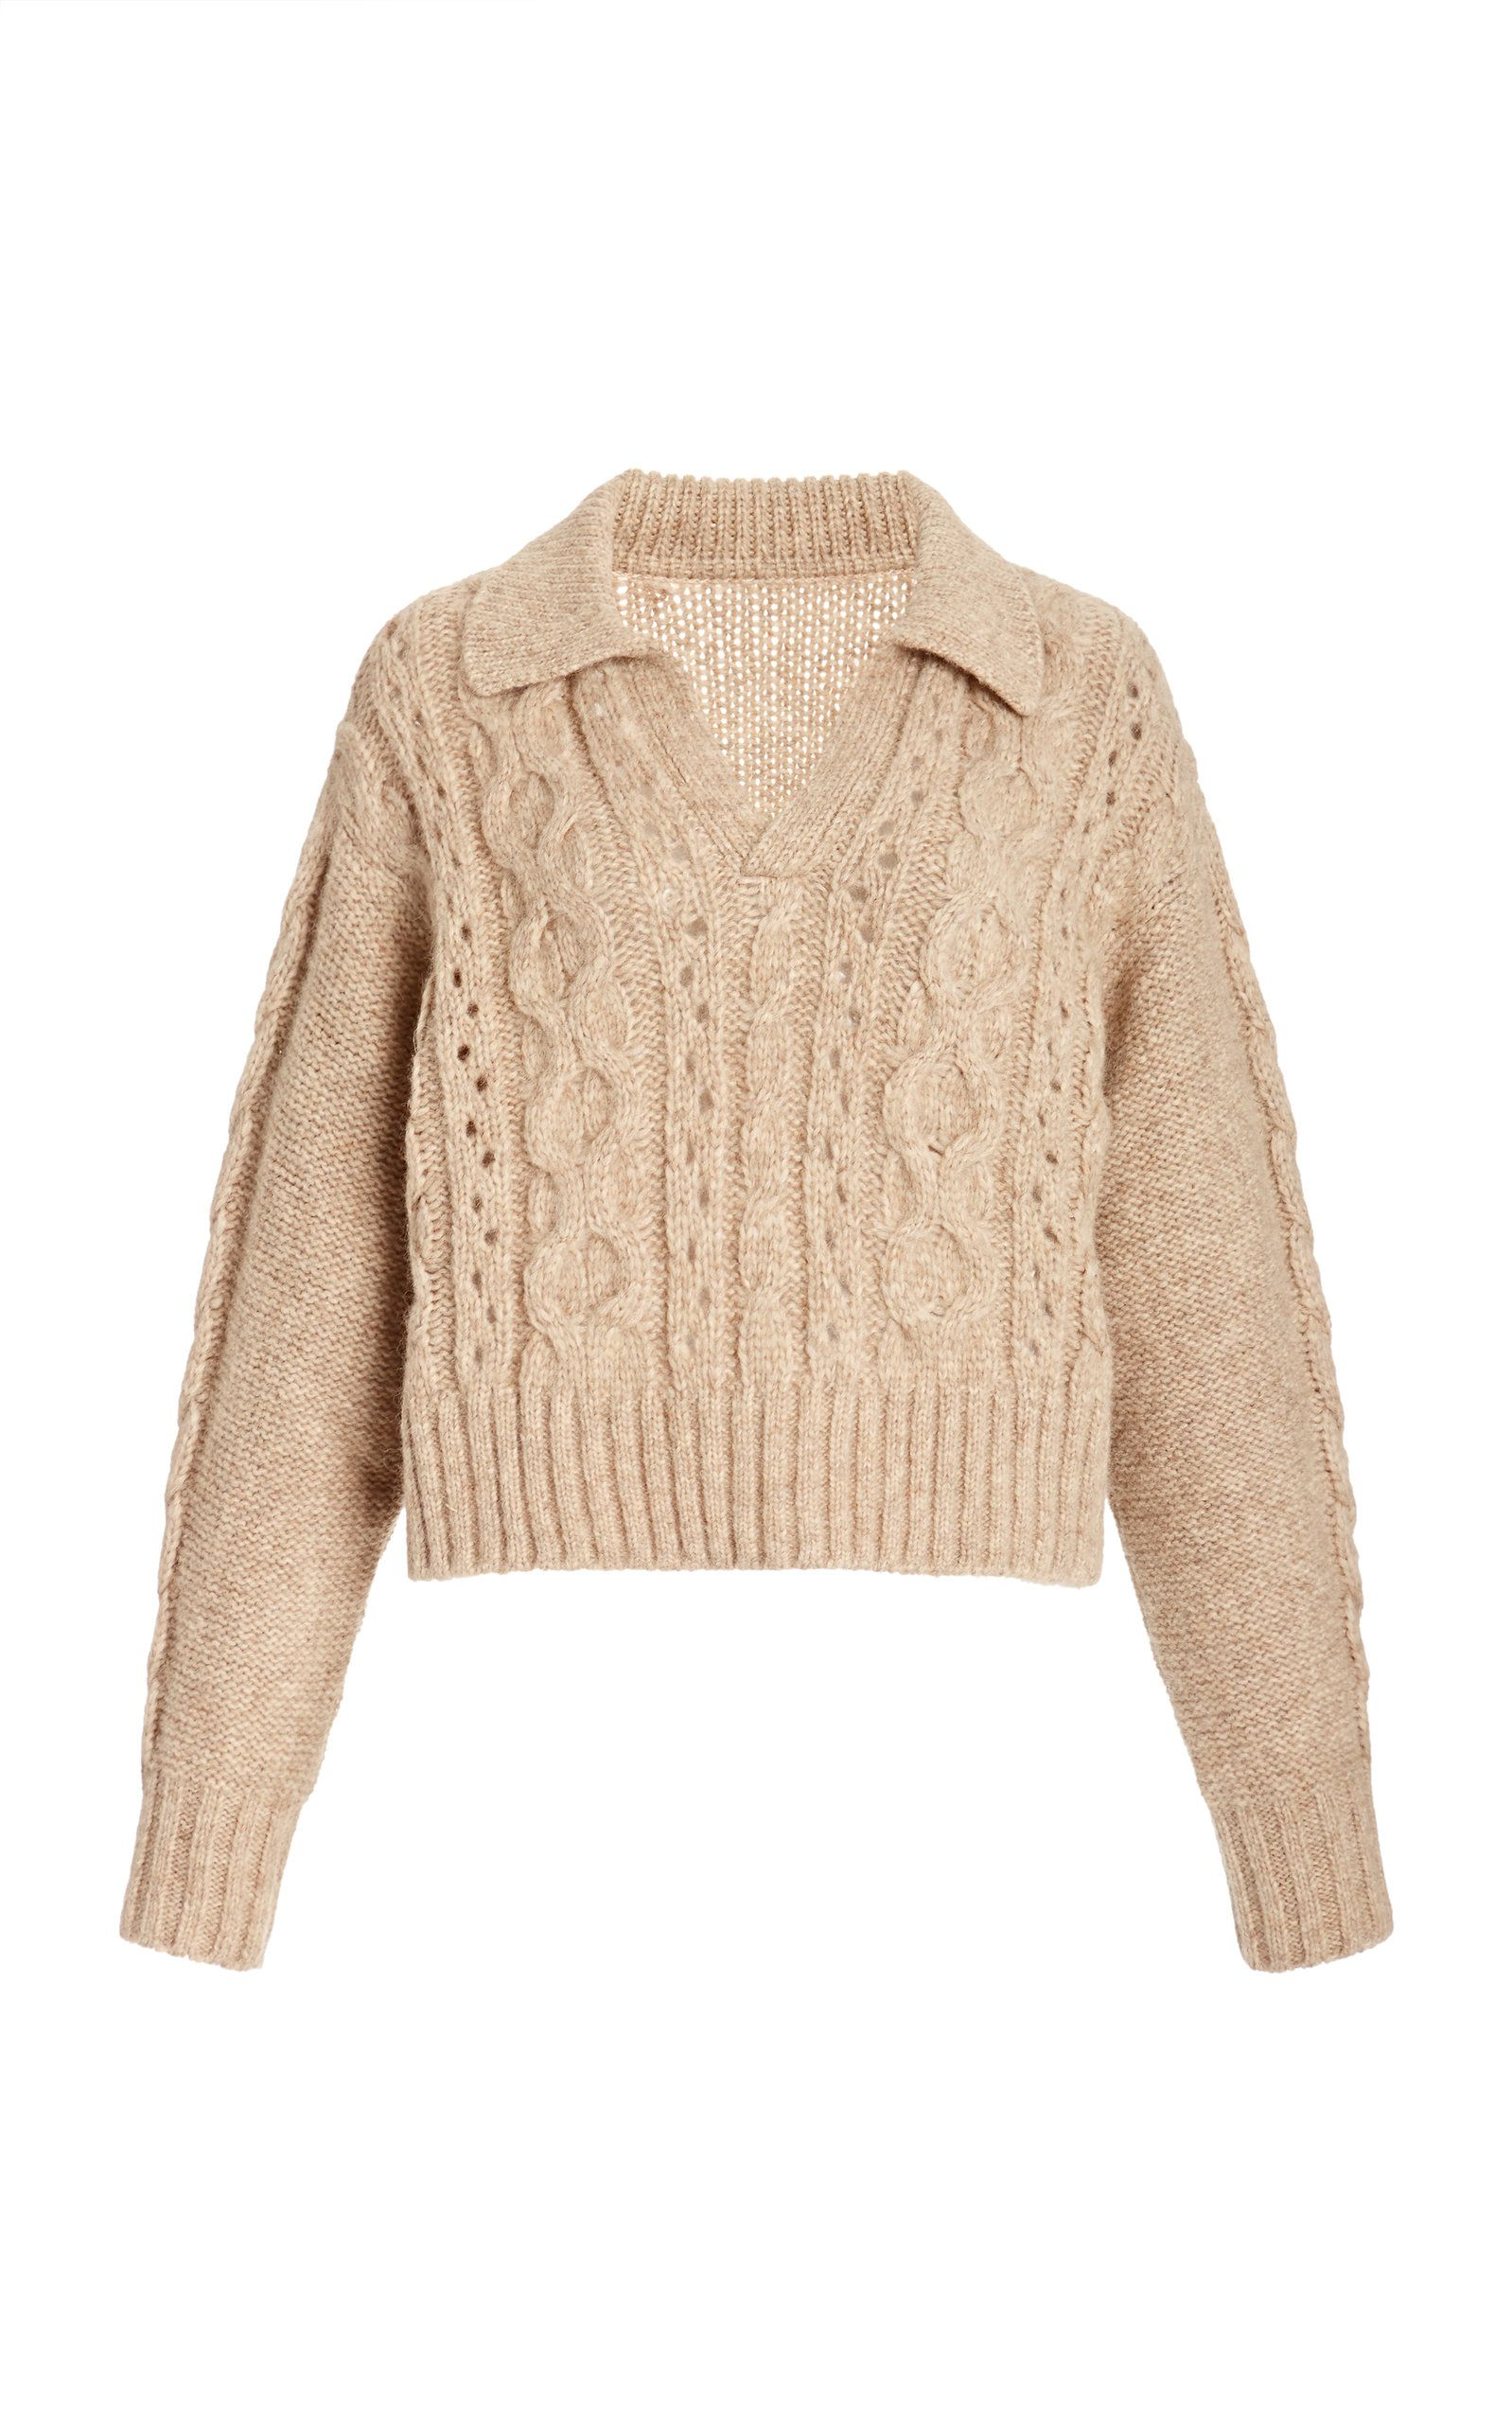 Ciao Lucia Torino Wool Blend Cropped Sweater in 2020